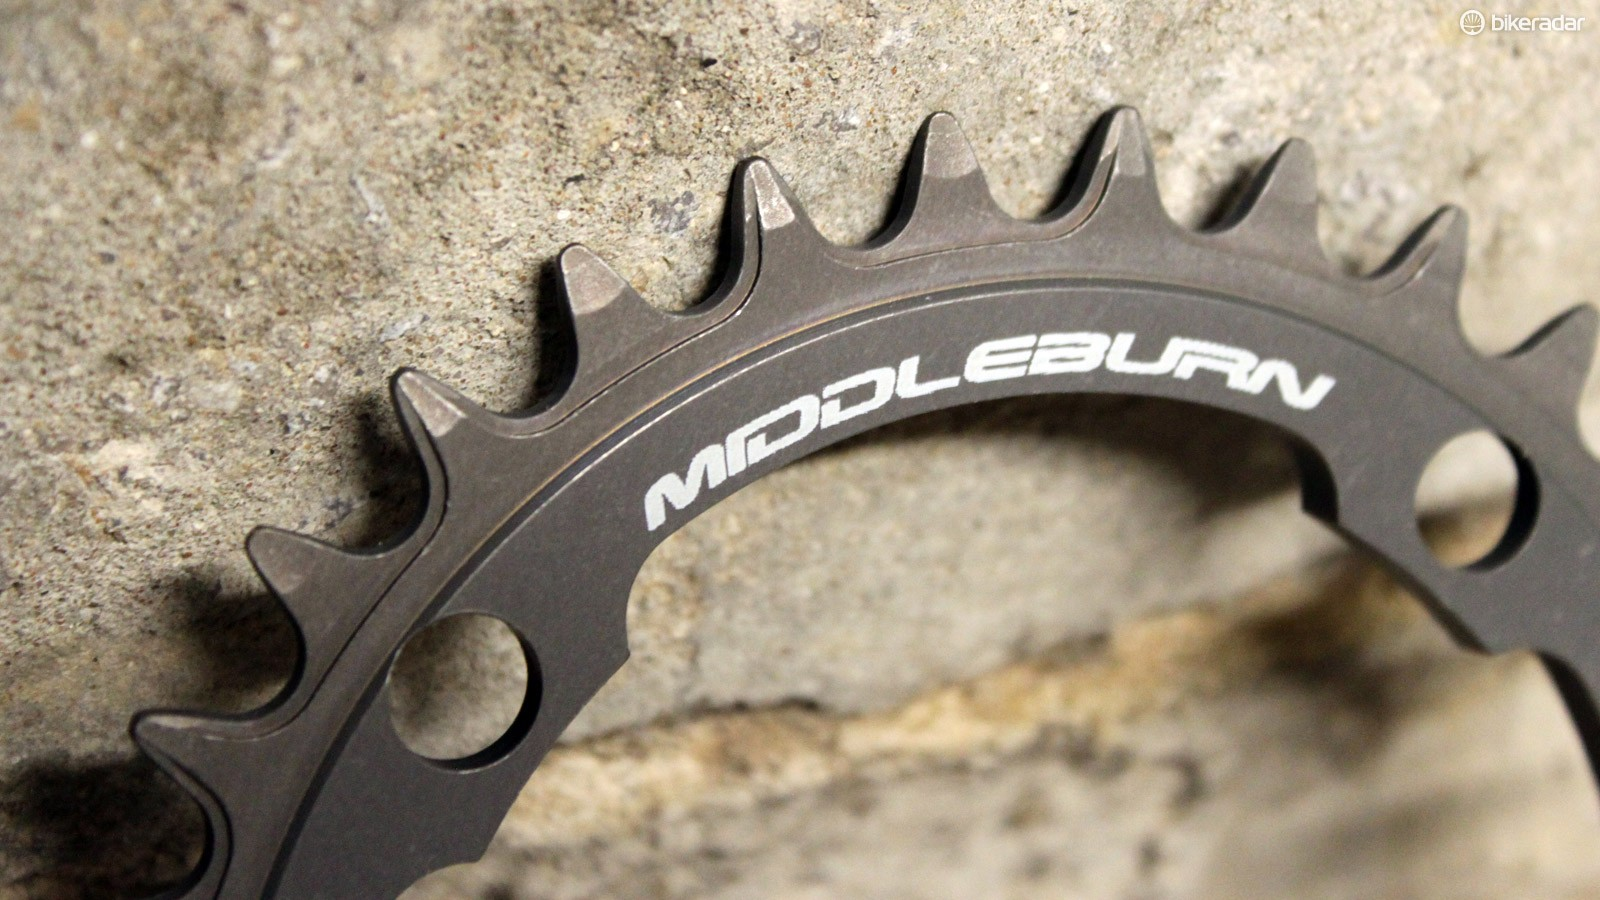 Narrow/wide chainrings